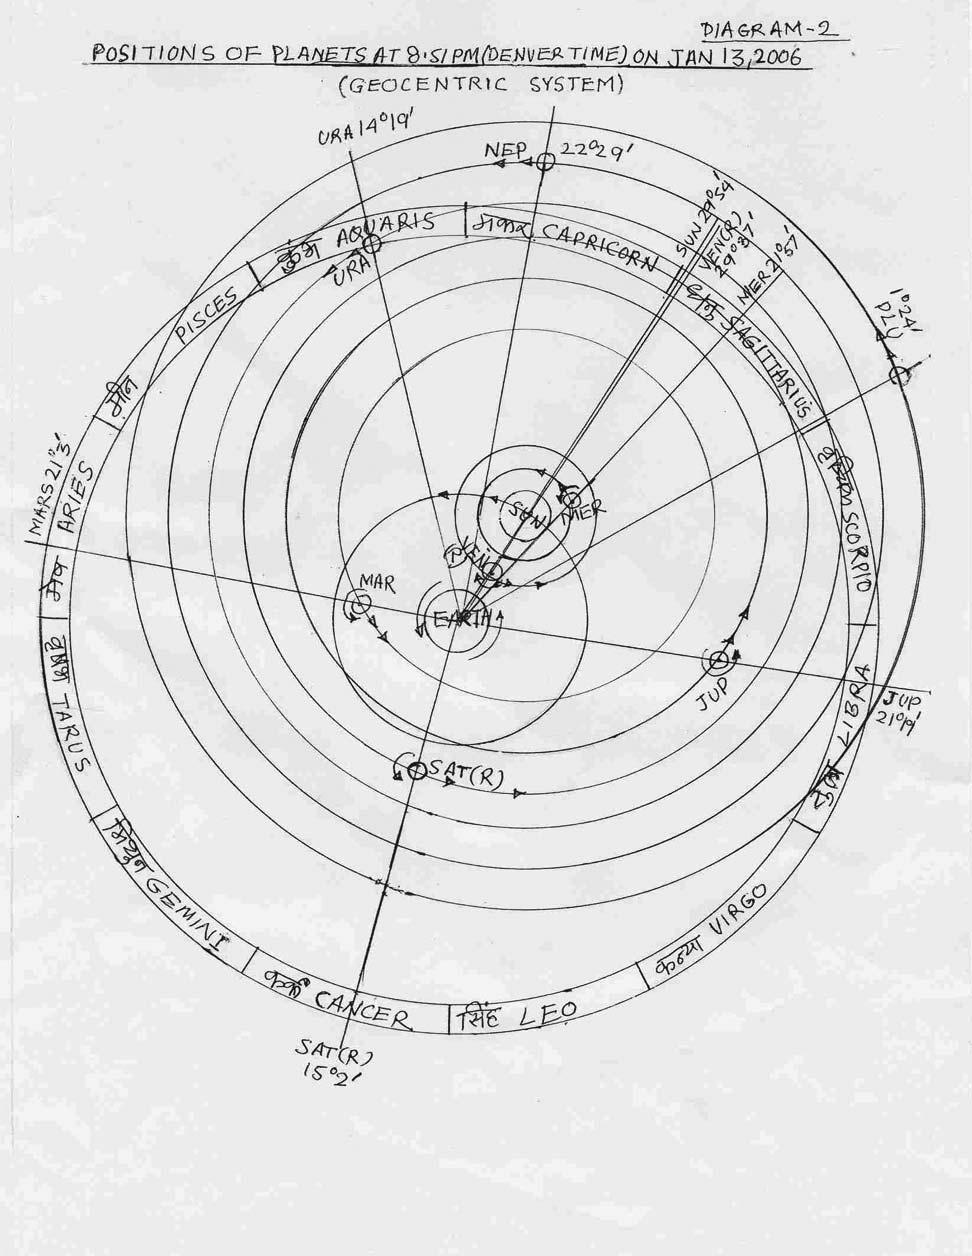 ॐ O.D. Mande Diagram-2 : Positions of Planets At 8.51 pm (Denver Time) on Jan.